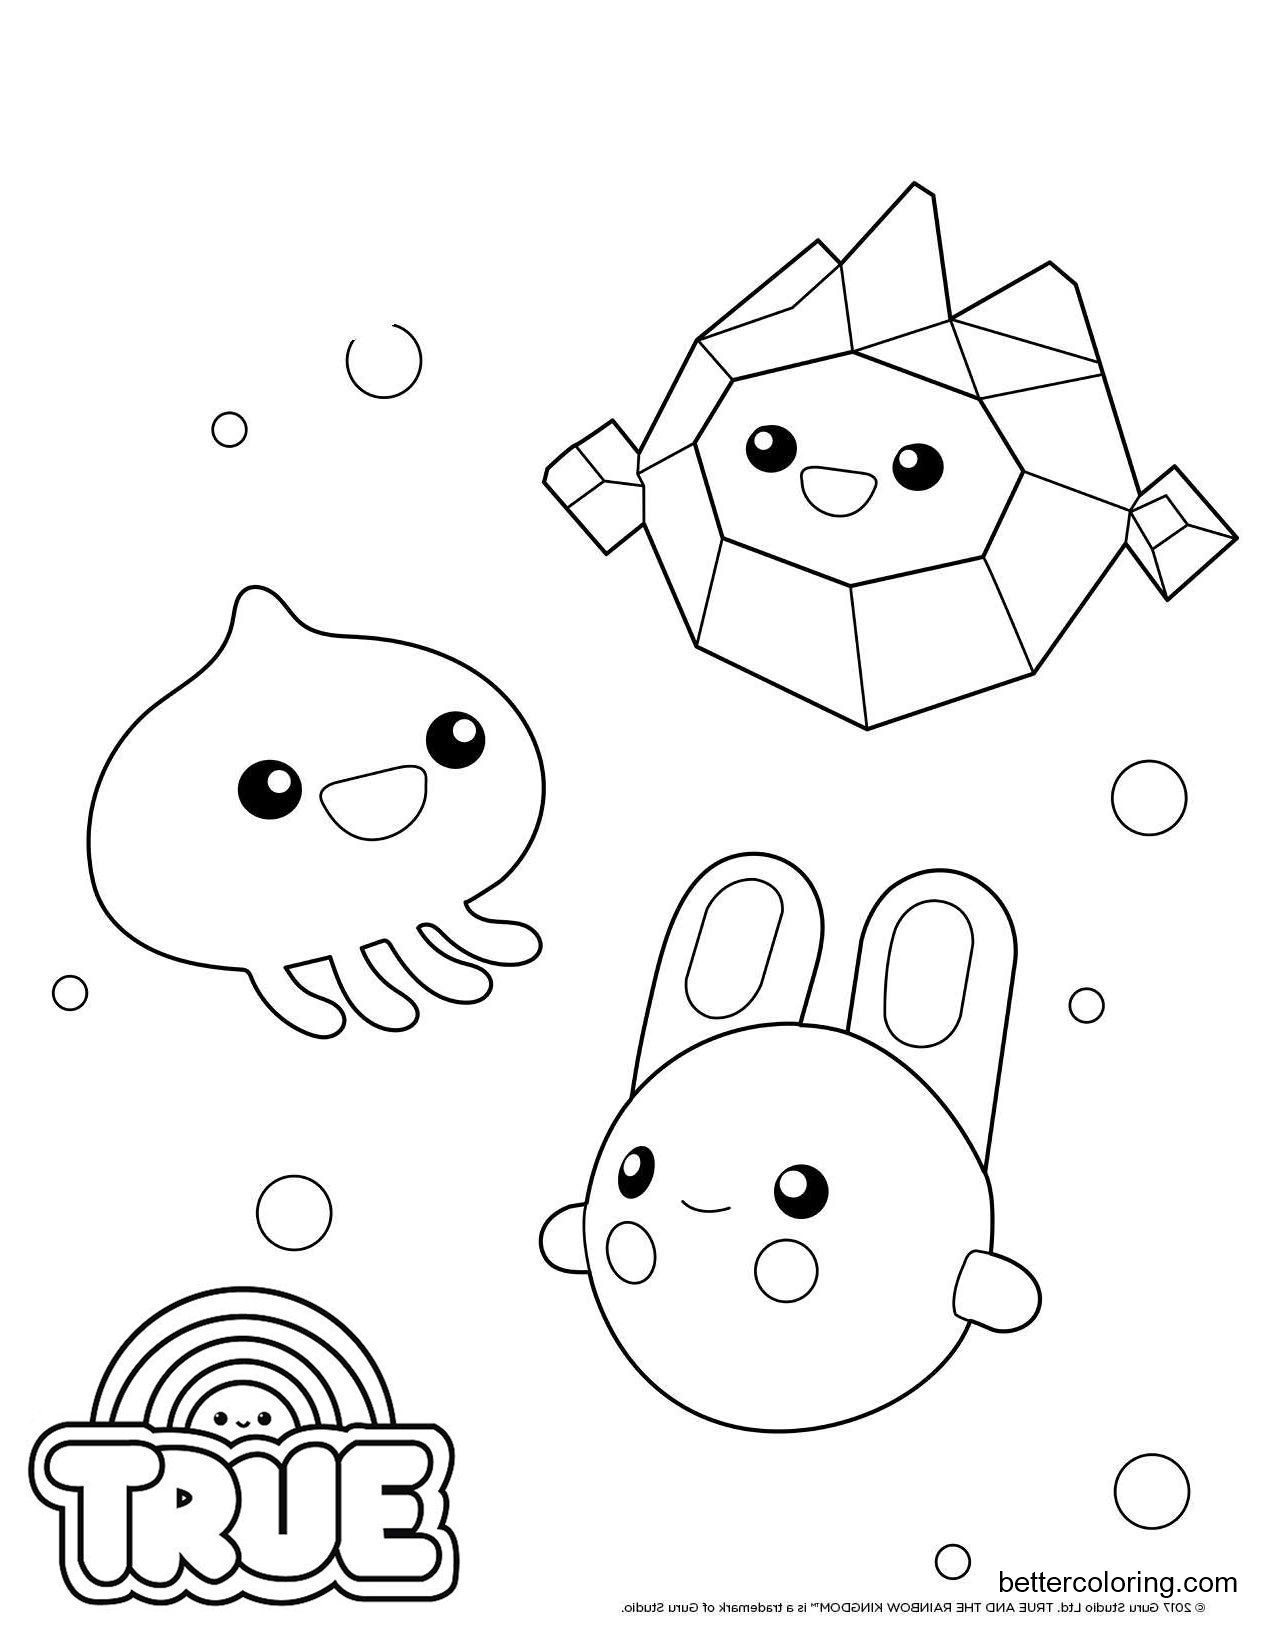 Free Wishes from True and the Rainbow Kingdom Coloring Pages printable